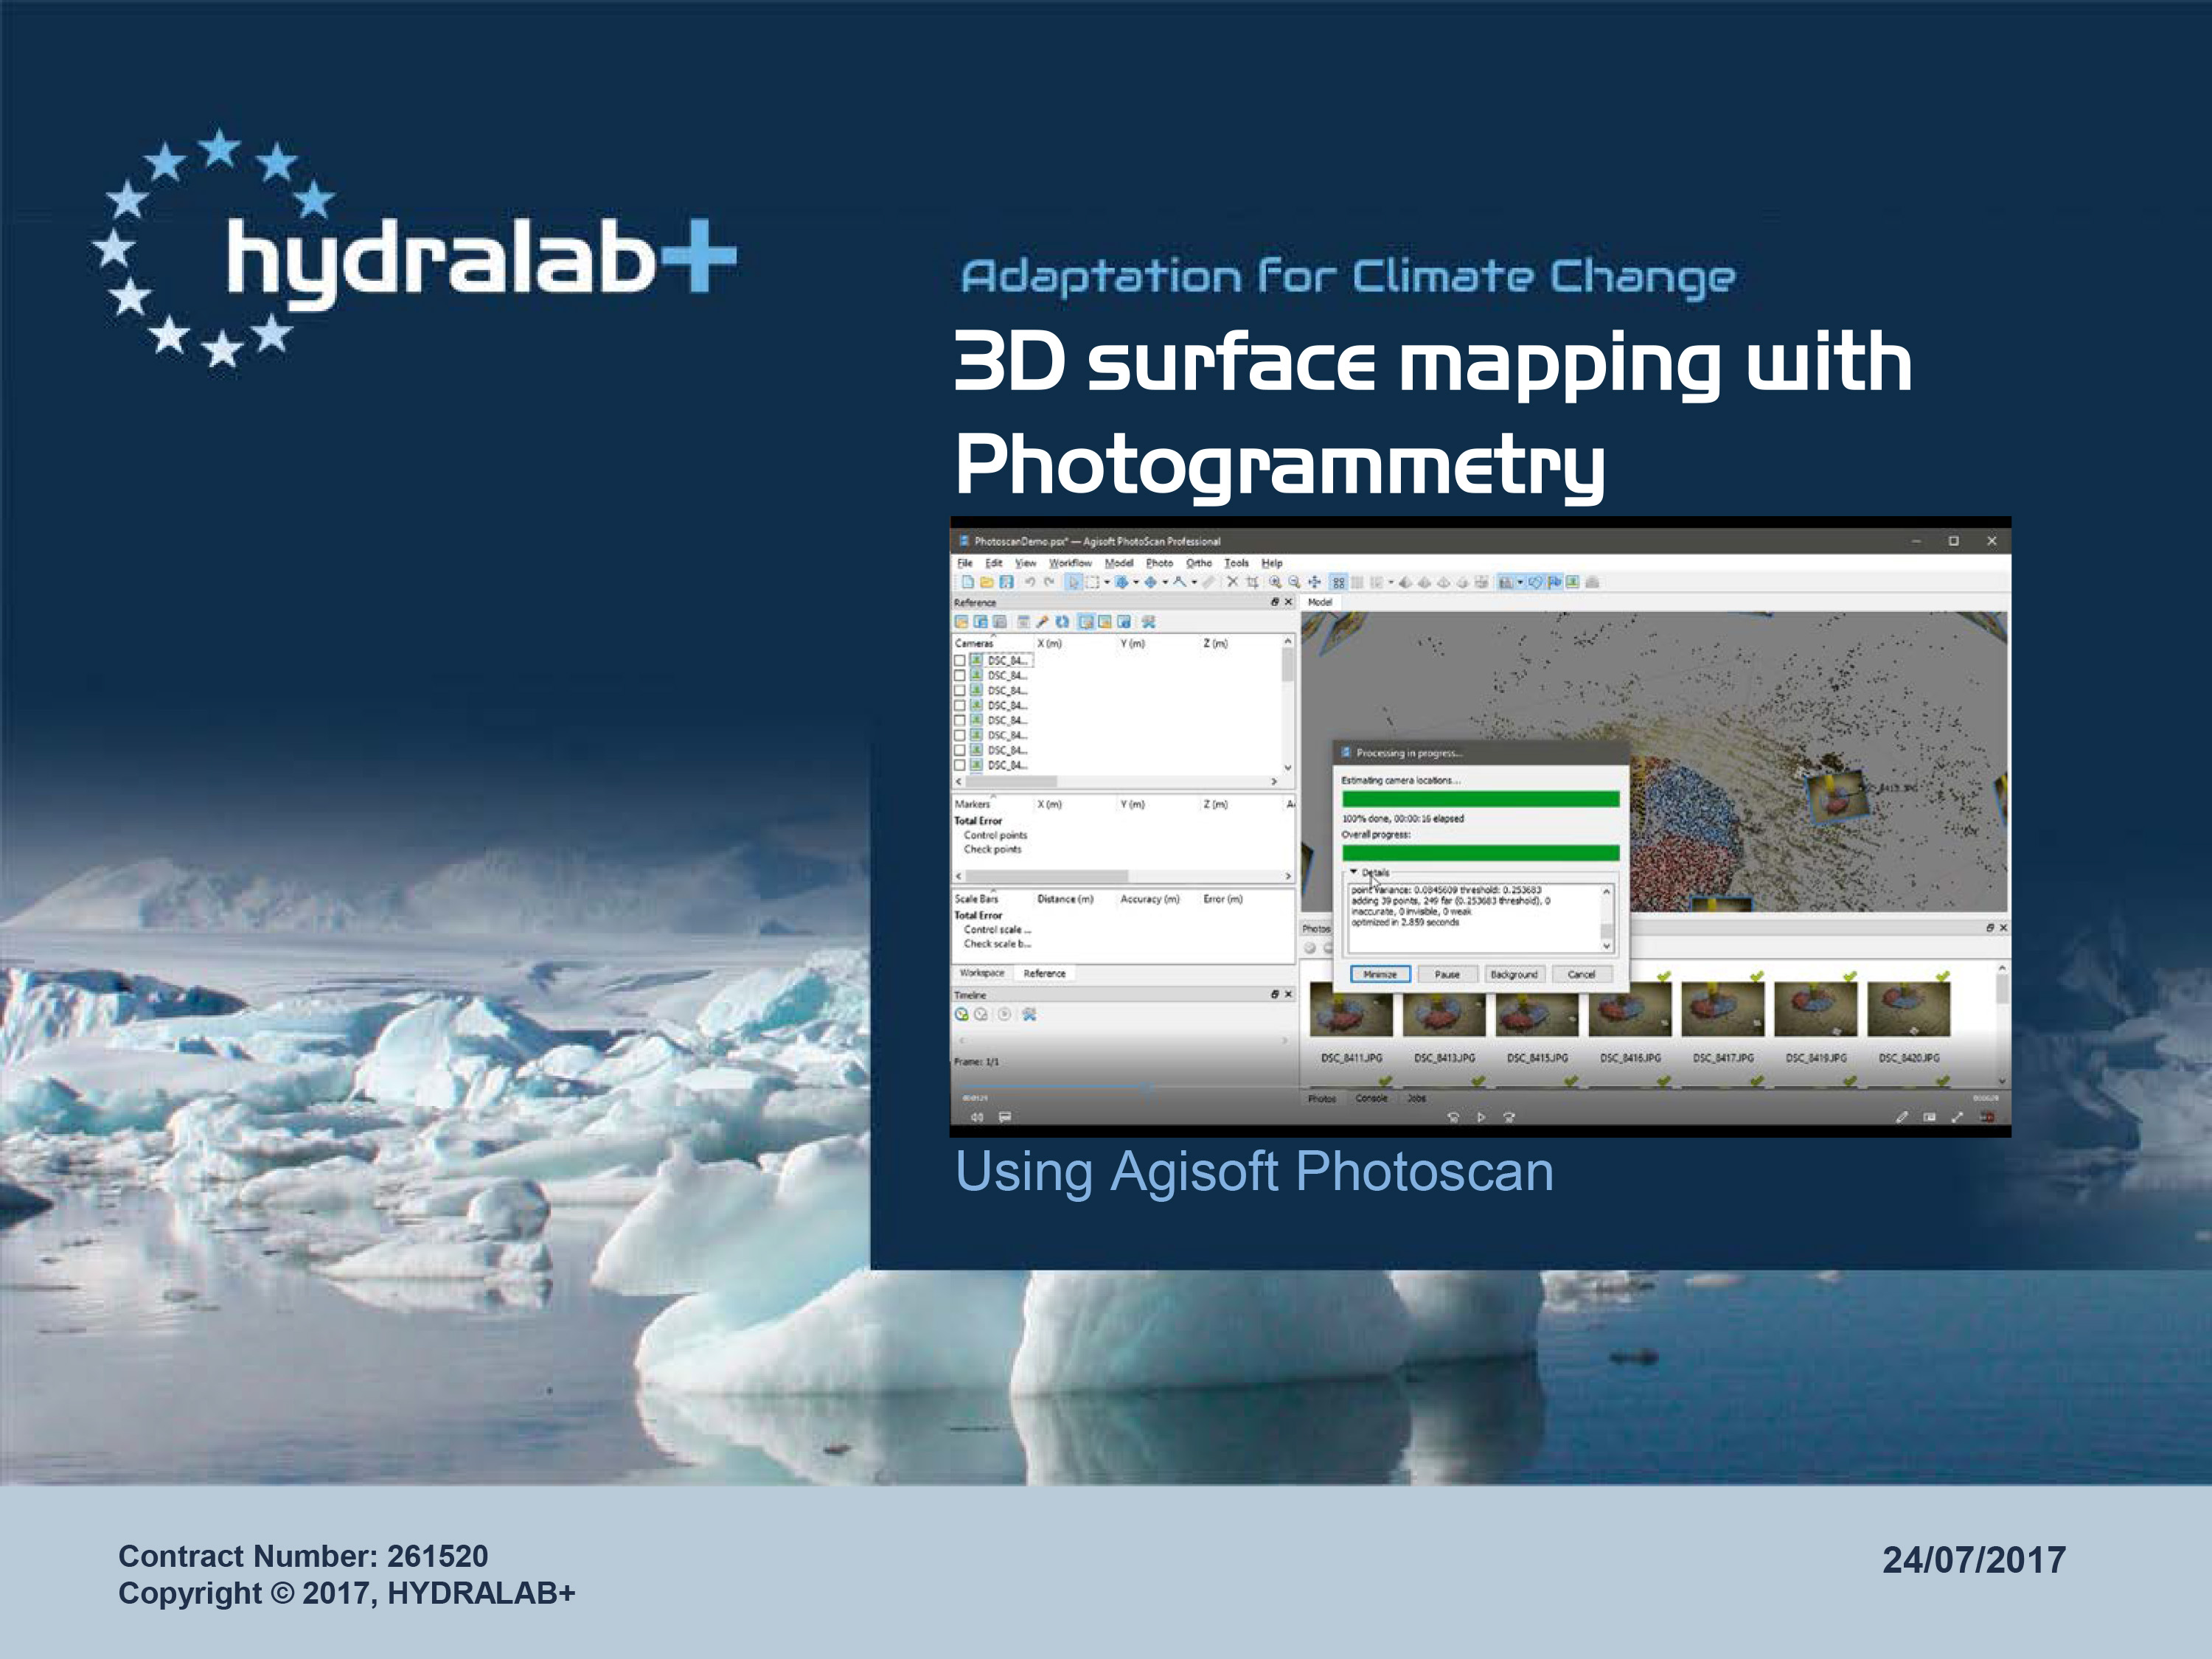 3D surface mapping with Photogrammetry